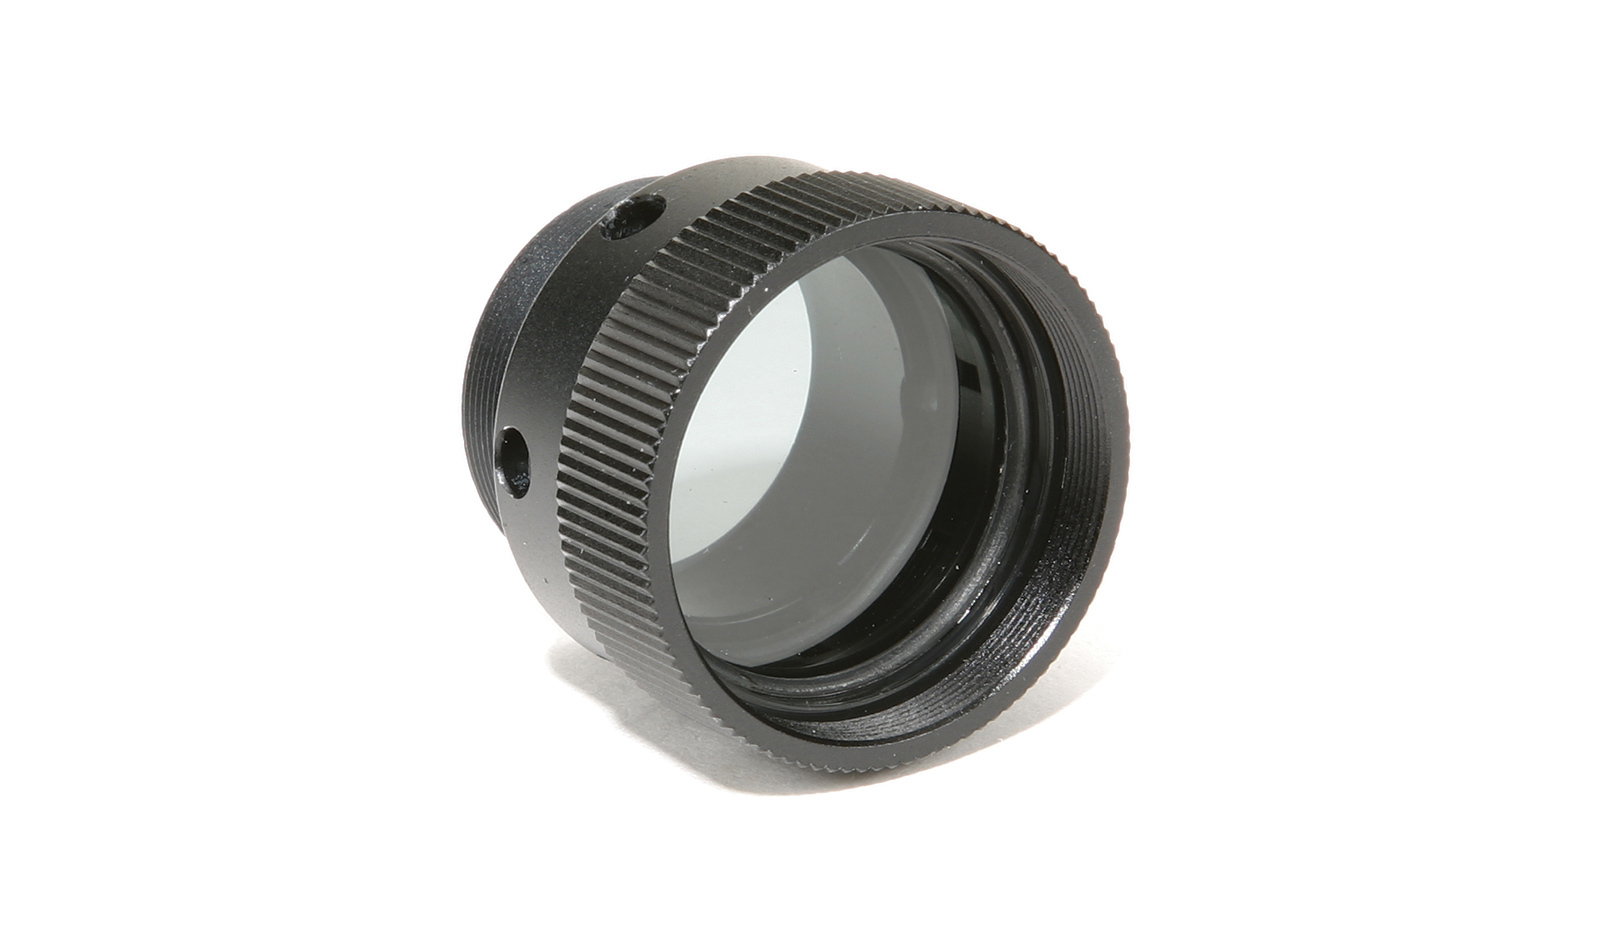 1x24 Reflex Polarizing Filter, Detachable